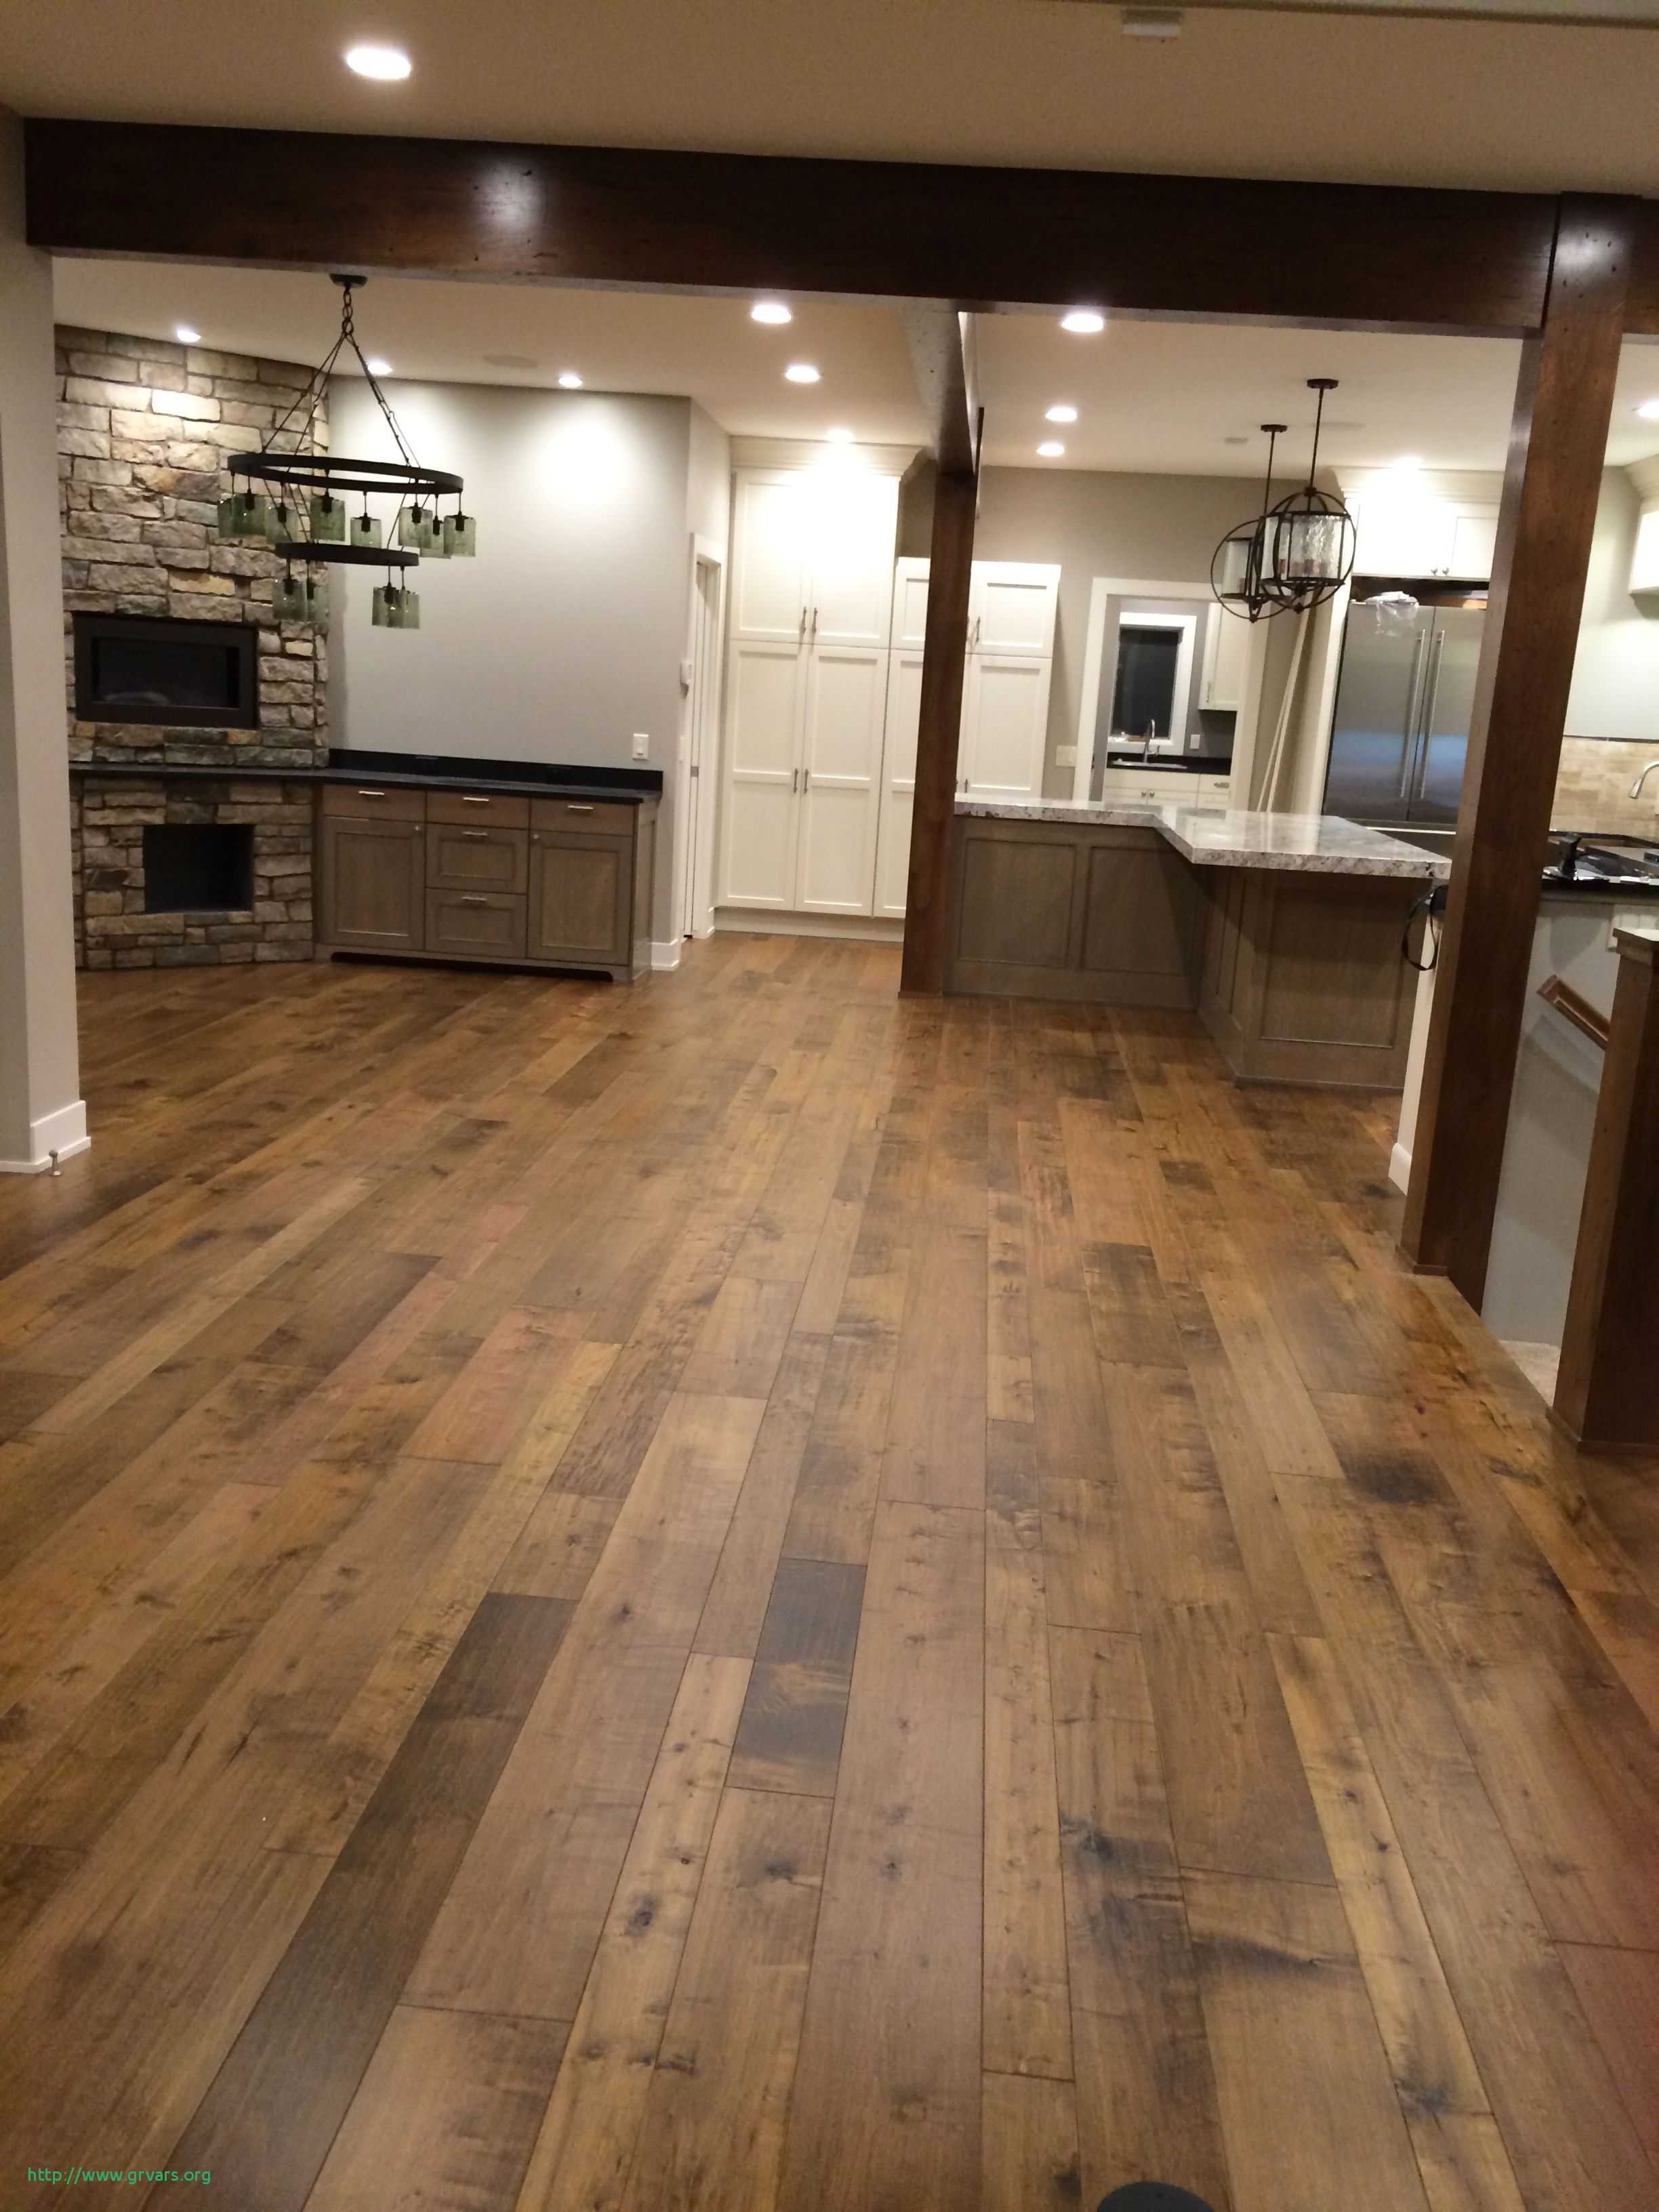 how do you install engineered hardwood floors on concrete of 15 a‰lagant best way to install engineered wood flooring ideas blog pertaining to 15 photos of the 15 a‰lagant best way to install engineered wood flooring